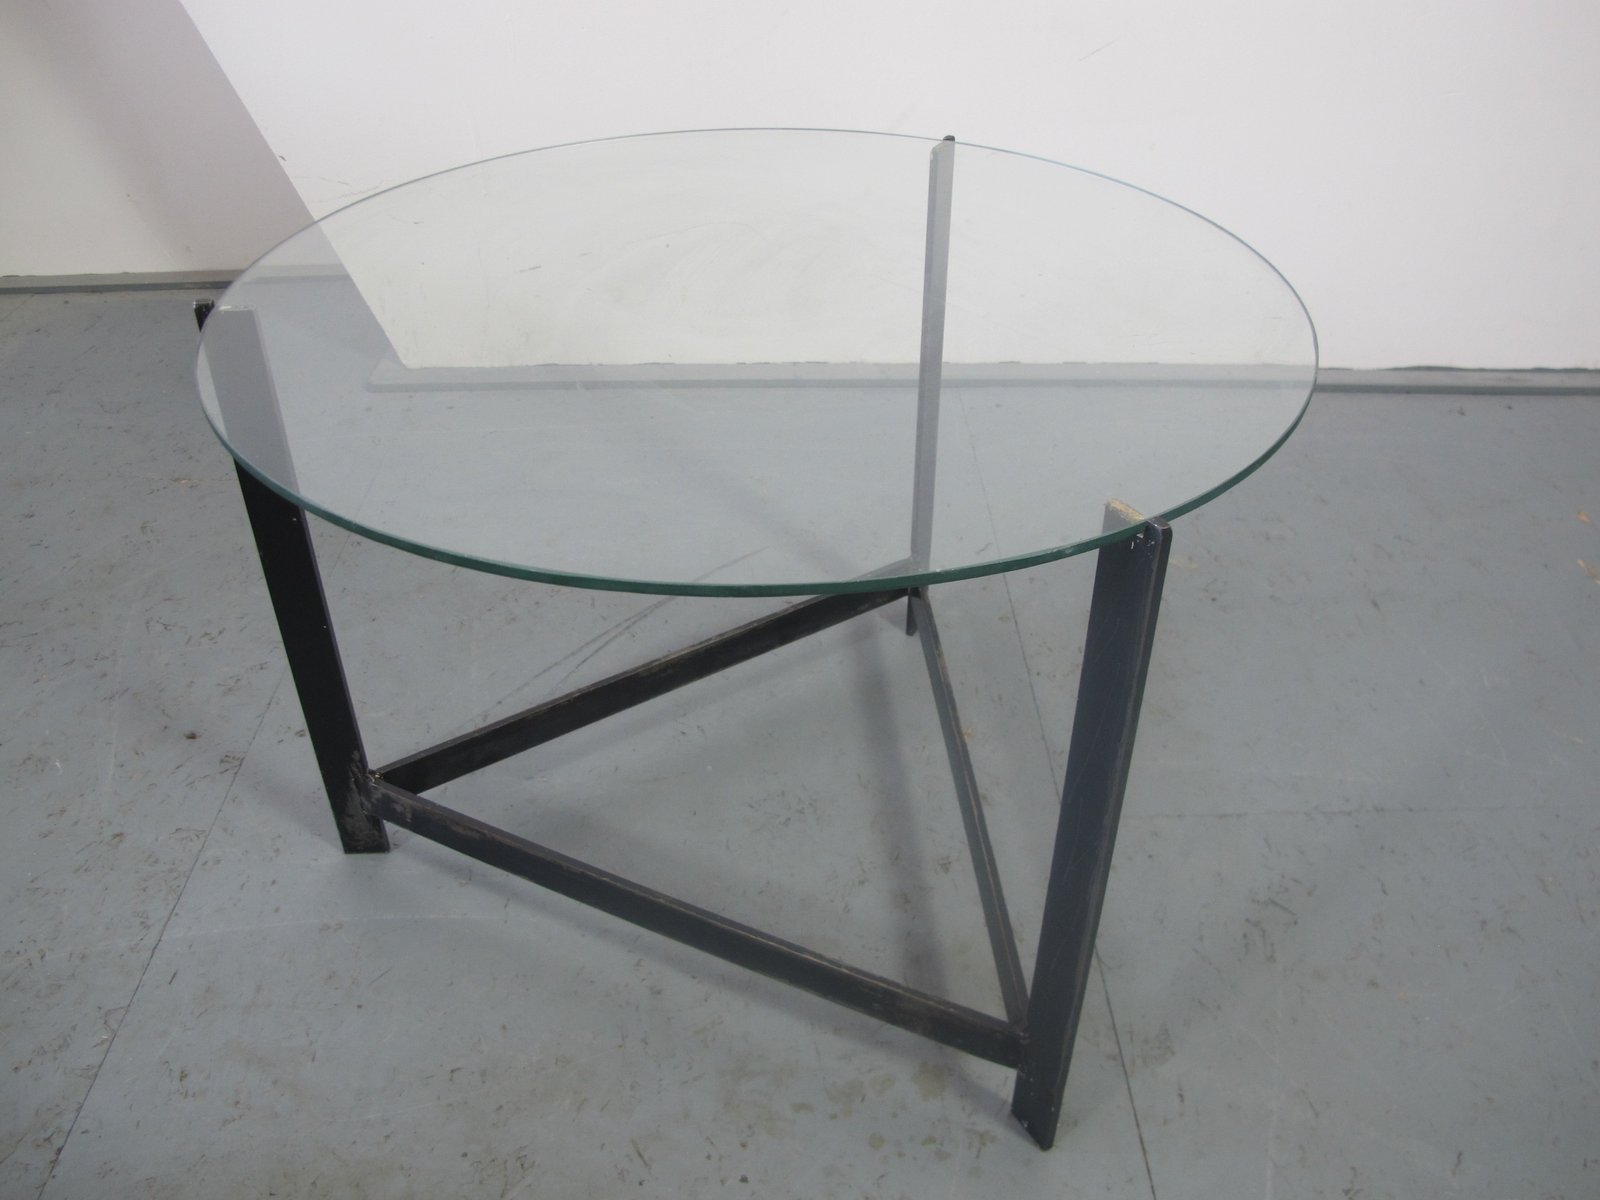 table d 39 appoint en acier verre et rotin 1960s en vente sur pamono. Black Bedroom Furniture Sets. Home Design Ideas